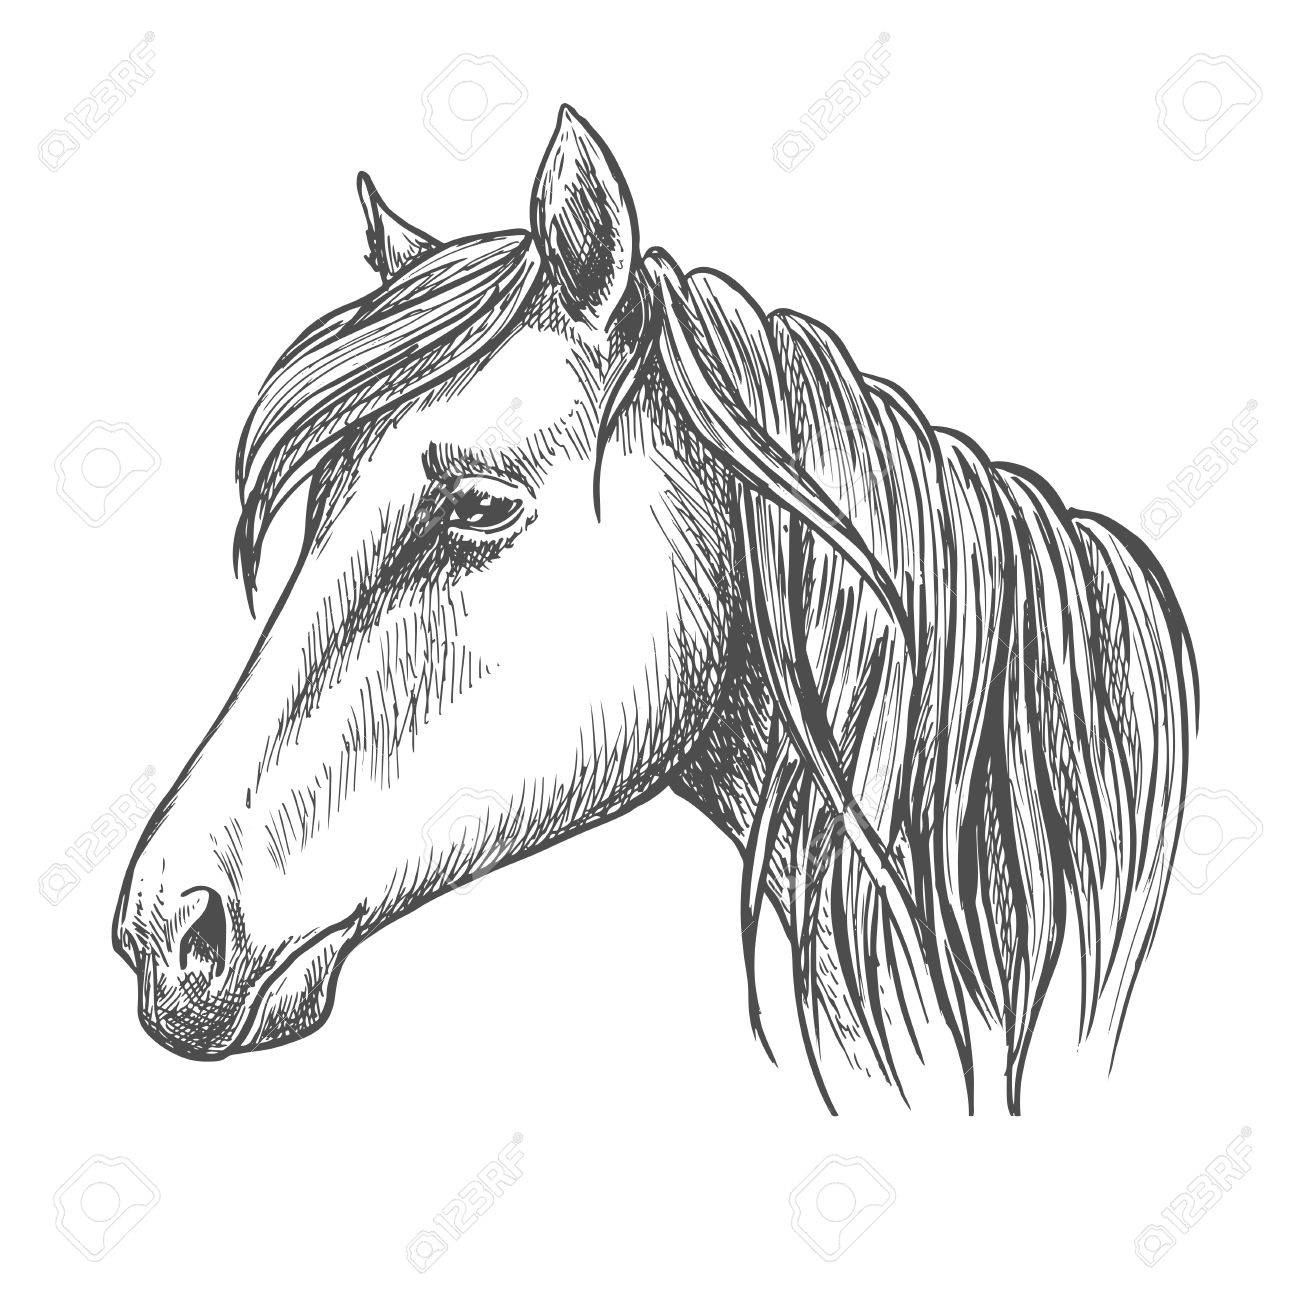 Riding Horse Head Sketch With Long Mane Horse Racing Equestrian Royalty Free Cliparts Vectors And Stock Illustration Image 60305309